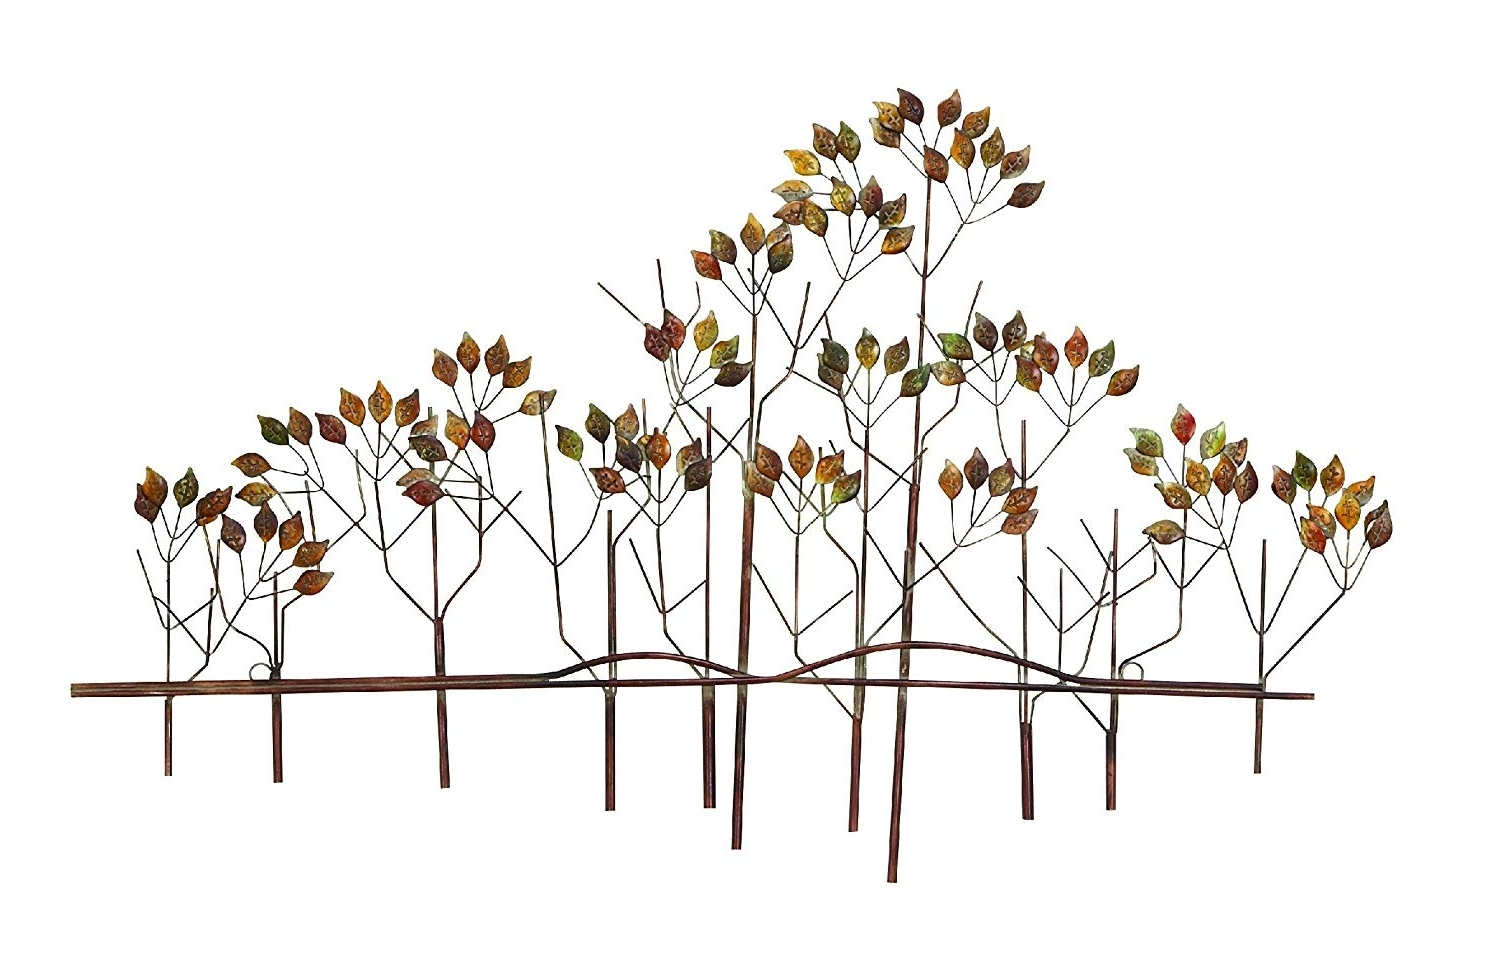 Amazon: Tree Of Life Metal Wall Art Sculptures Home Decor Life Within Best And Newest Metal Wall Art Trees (View 3 of 15)